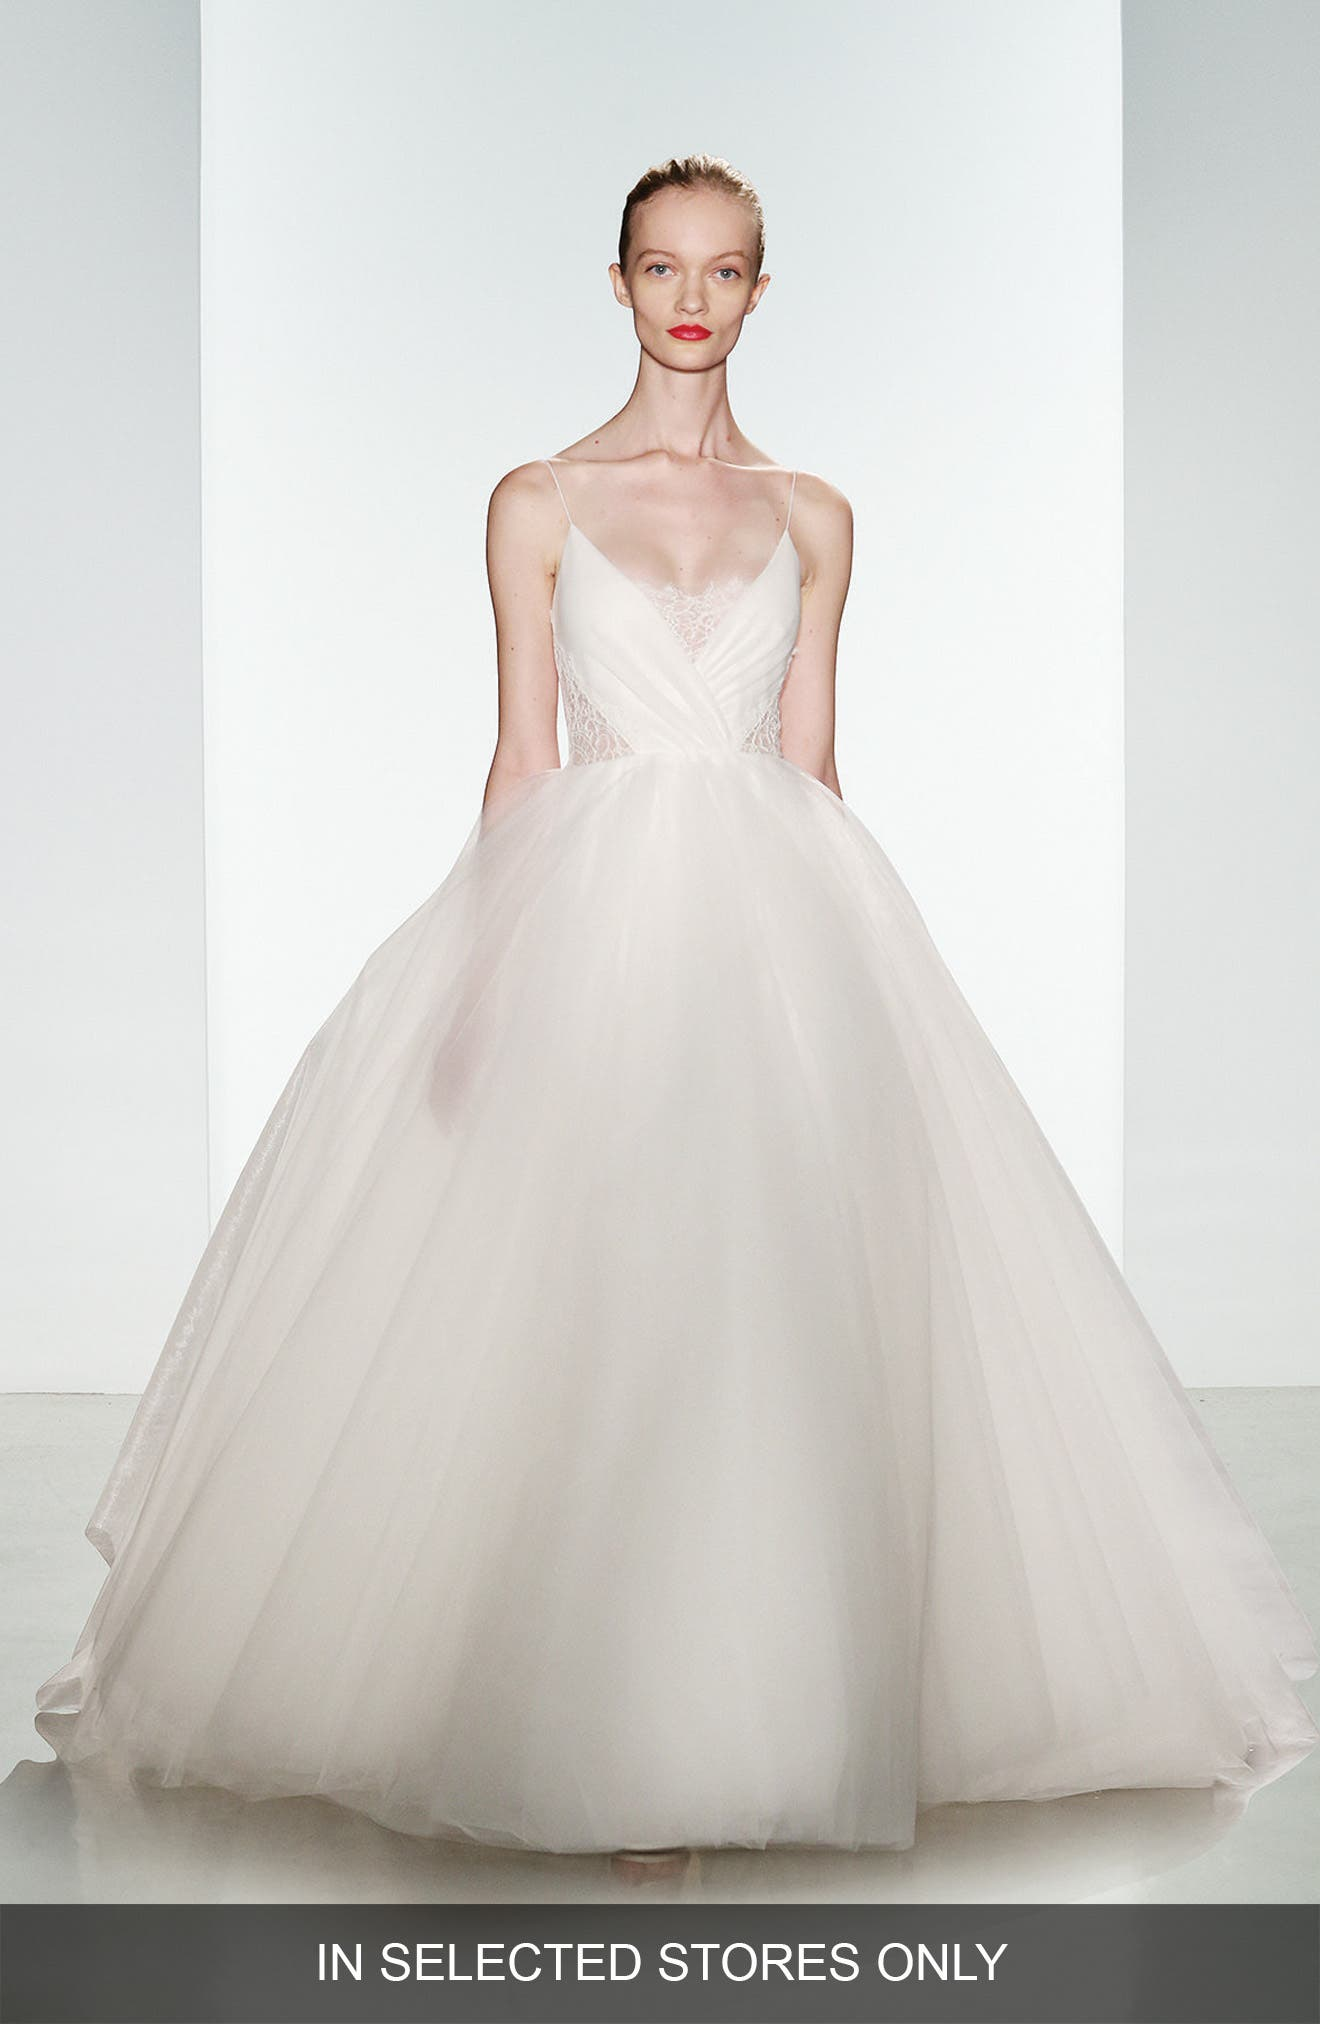 Alternate Image 1 Selected - Christos Bridal Penny Lace Inset Spaghetti Strap Tulle Ballgown